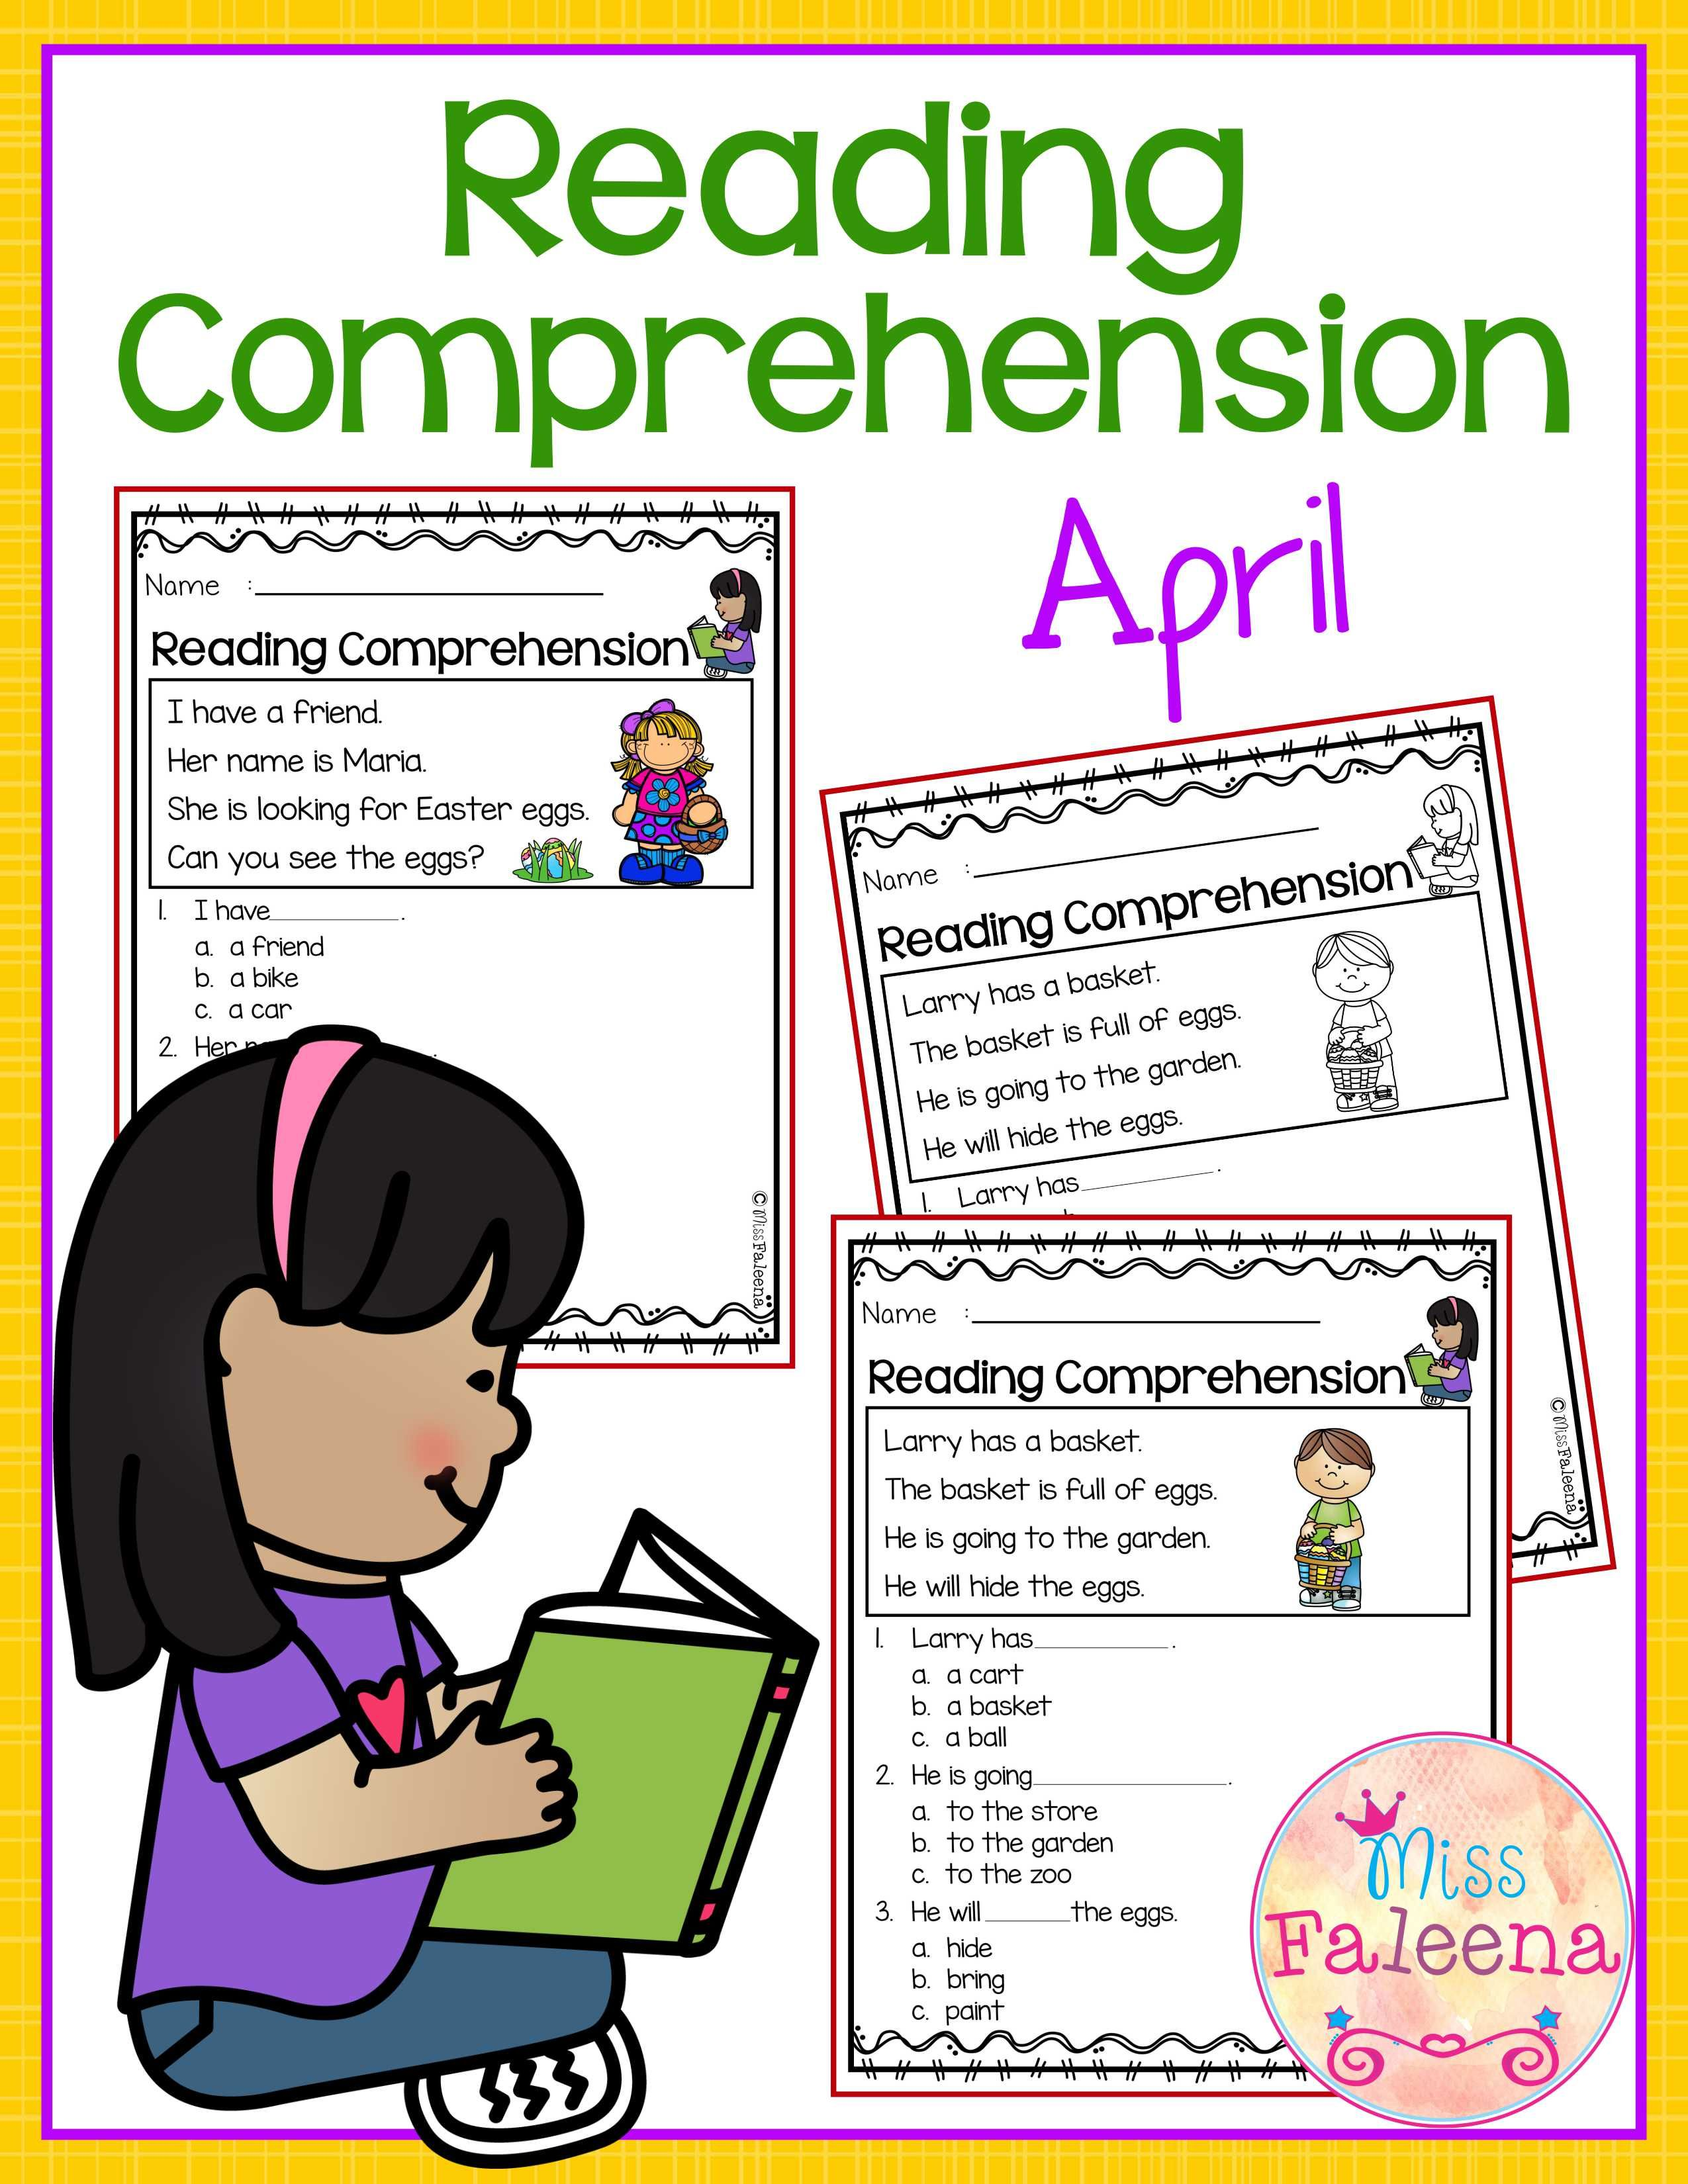 April Reading Comprehension Is Suitable For Kindergarten